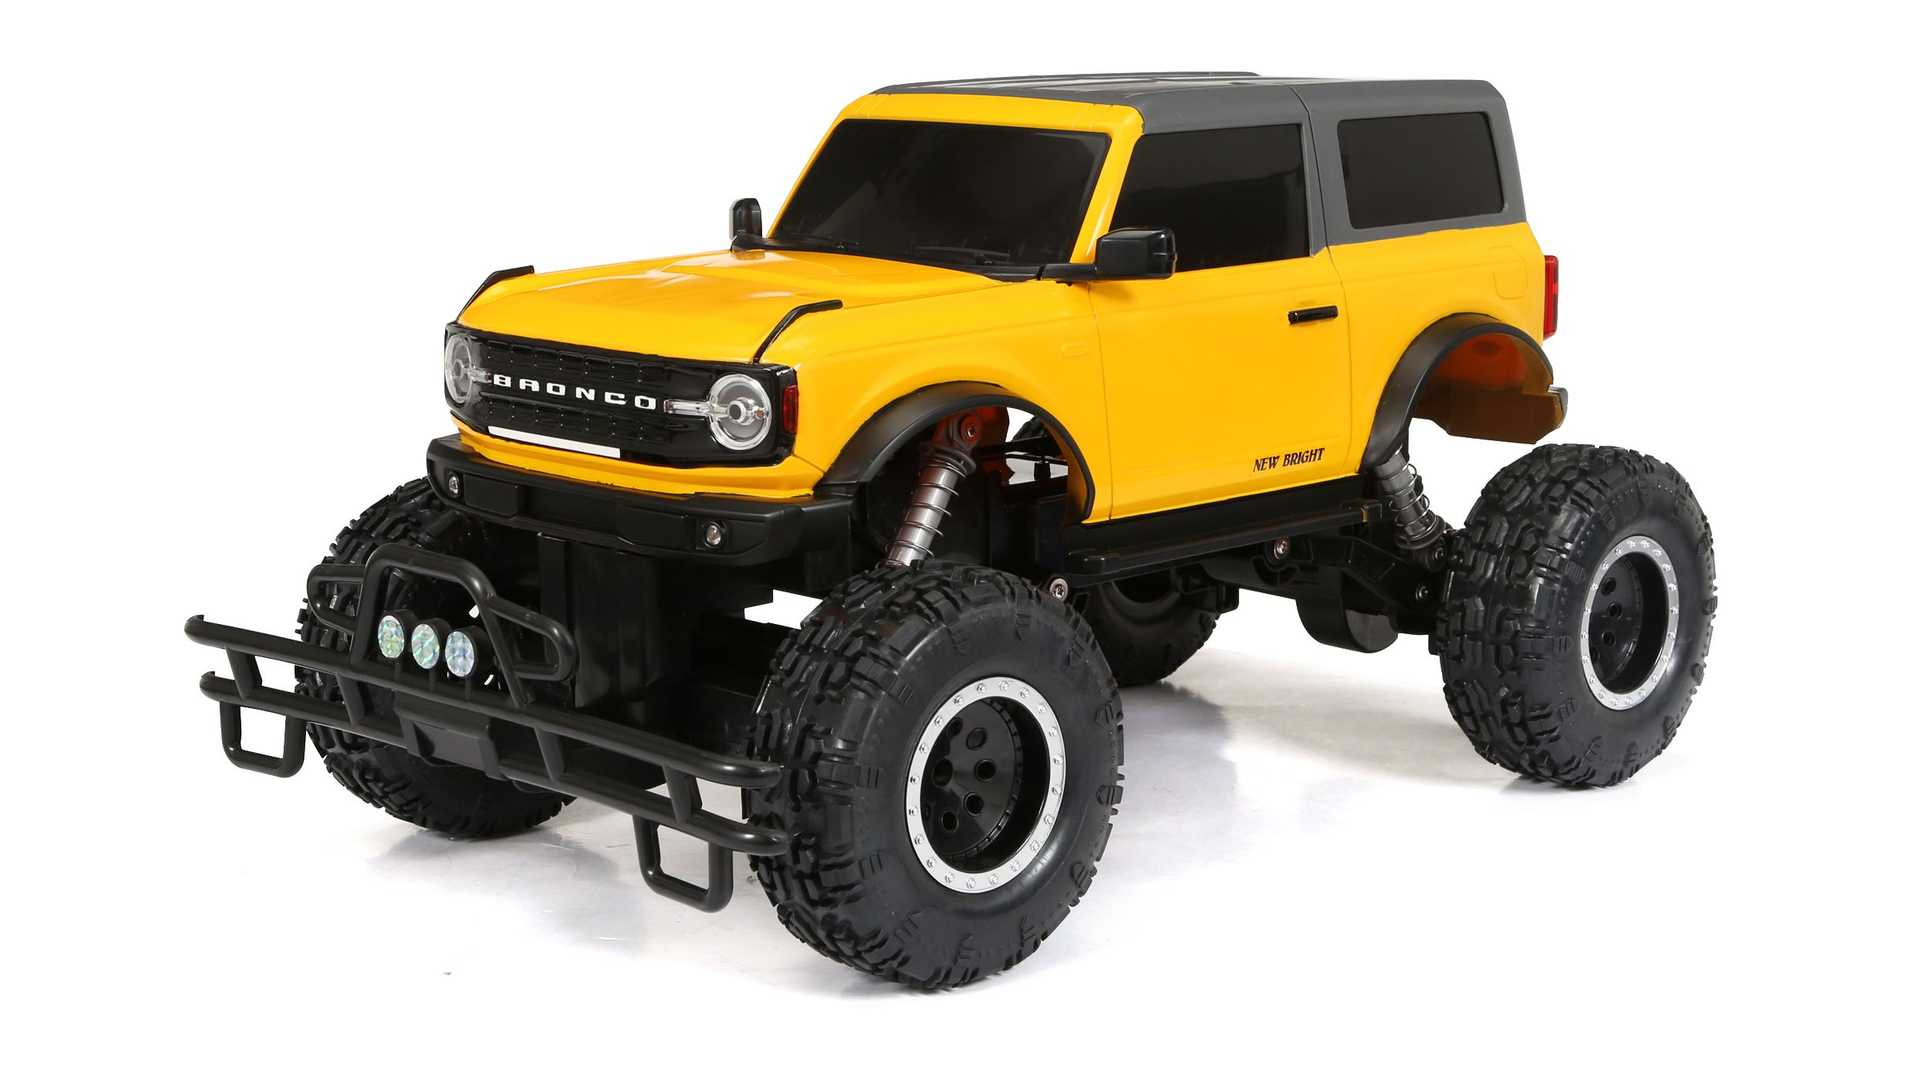 Get A 2021 Ford Bronco R/C For $70, But There's A Catch